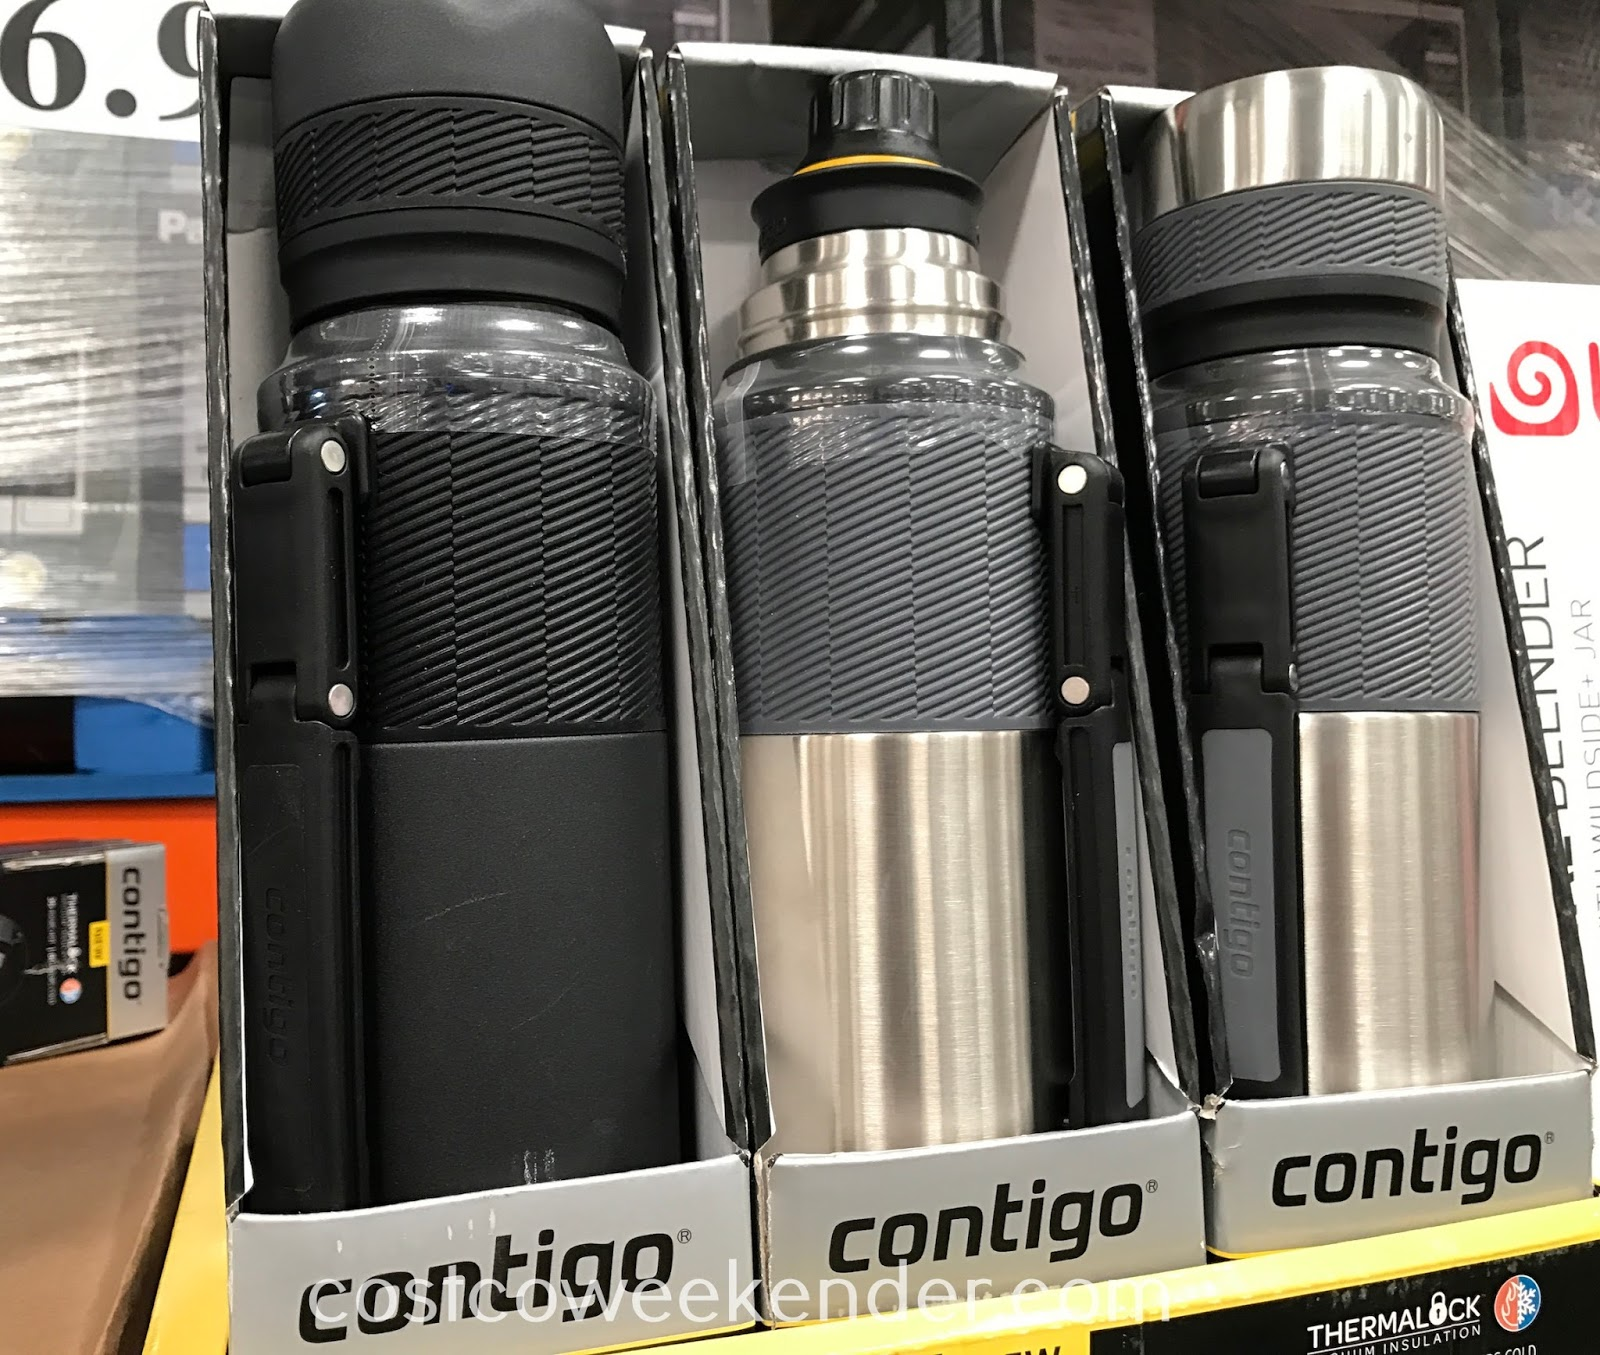 Enjoy a warm or cold beverage on the go with the Contigo Stainless Thermal Bottle